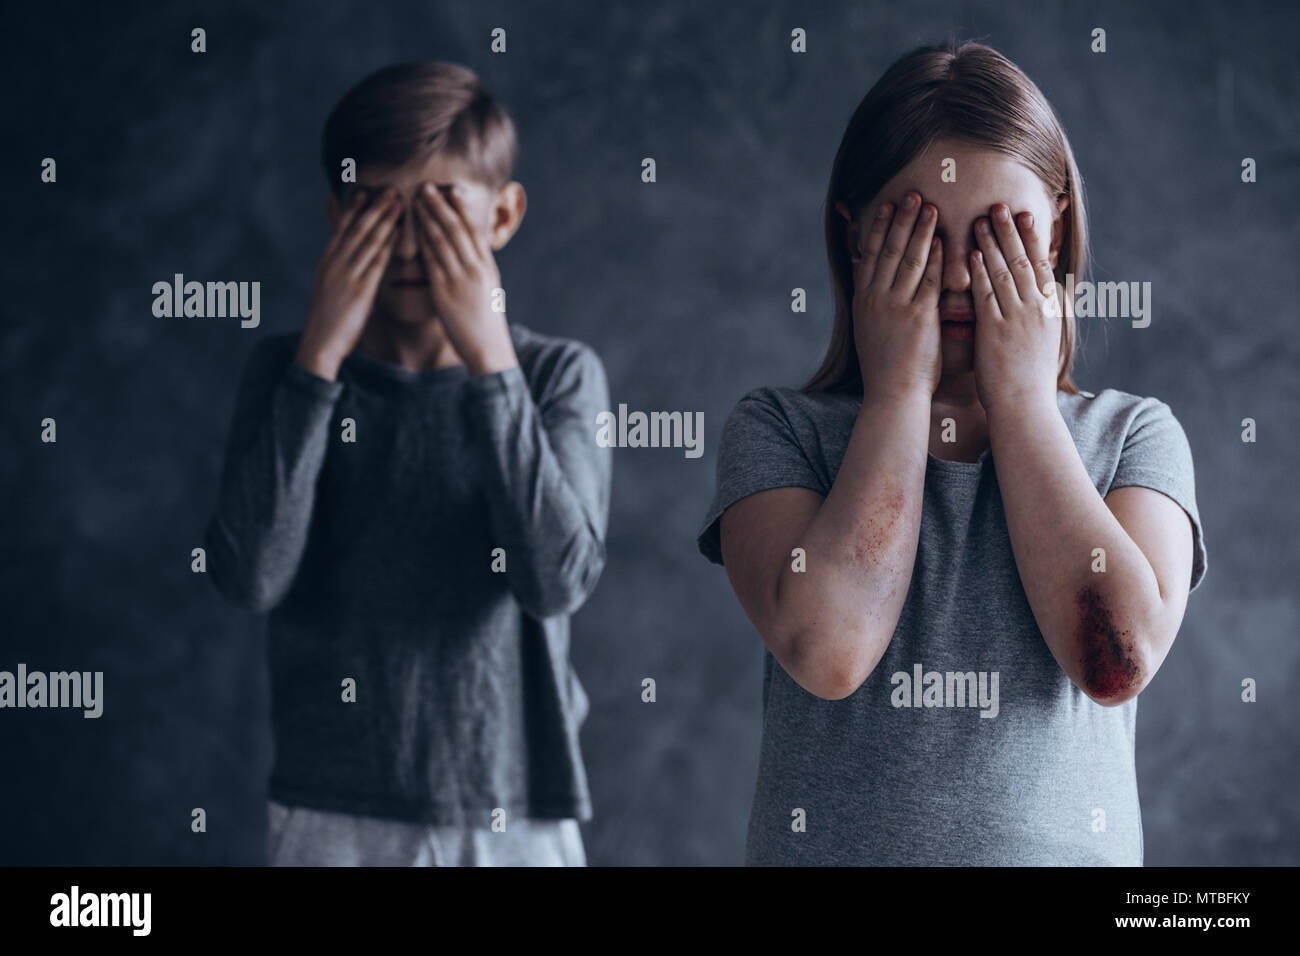 Injured and terrified siblings from dysfunctional family - Stock Image